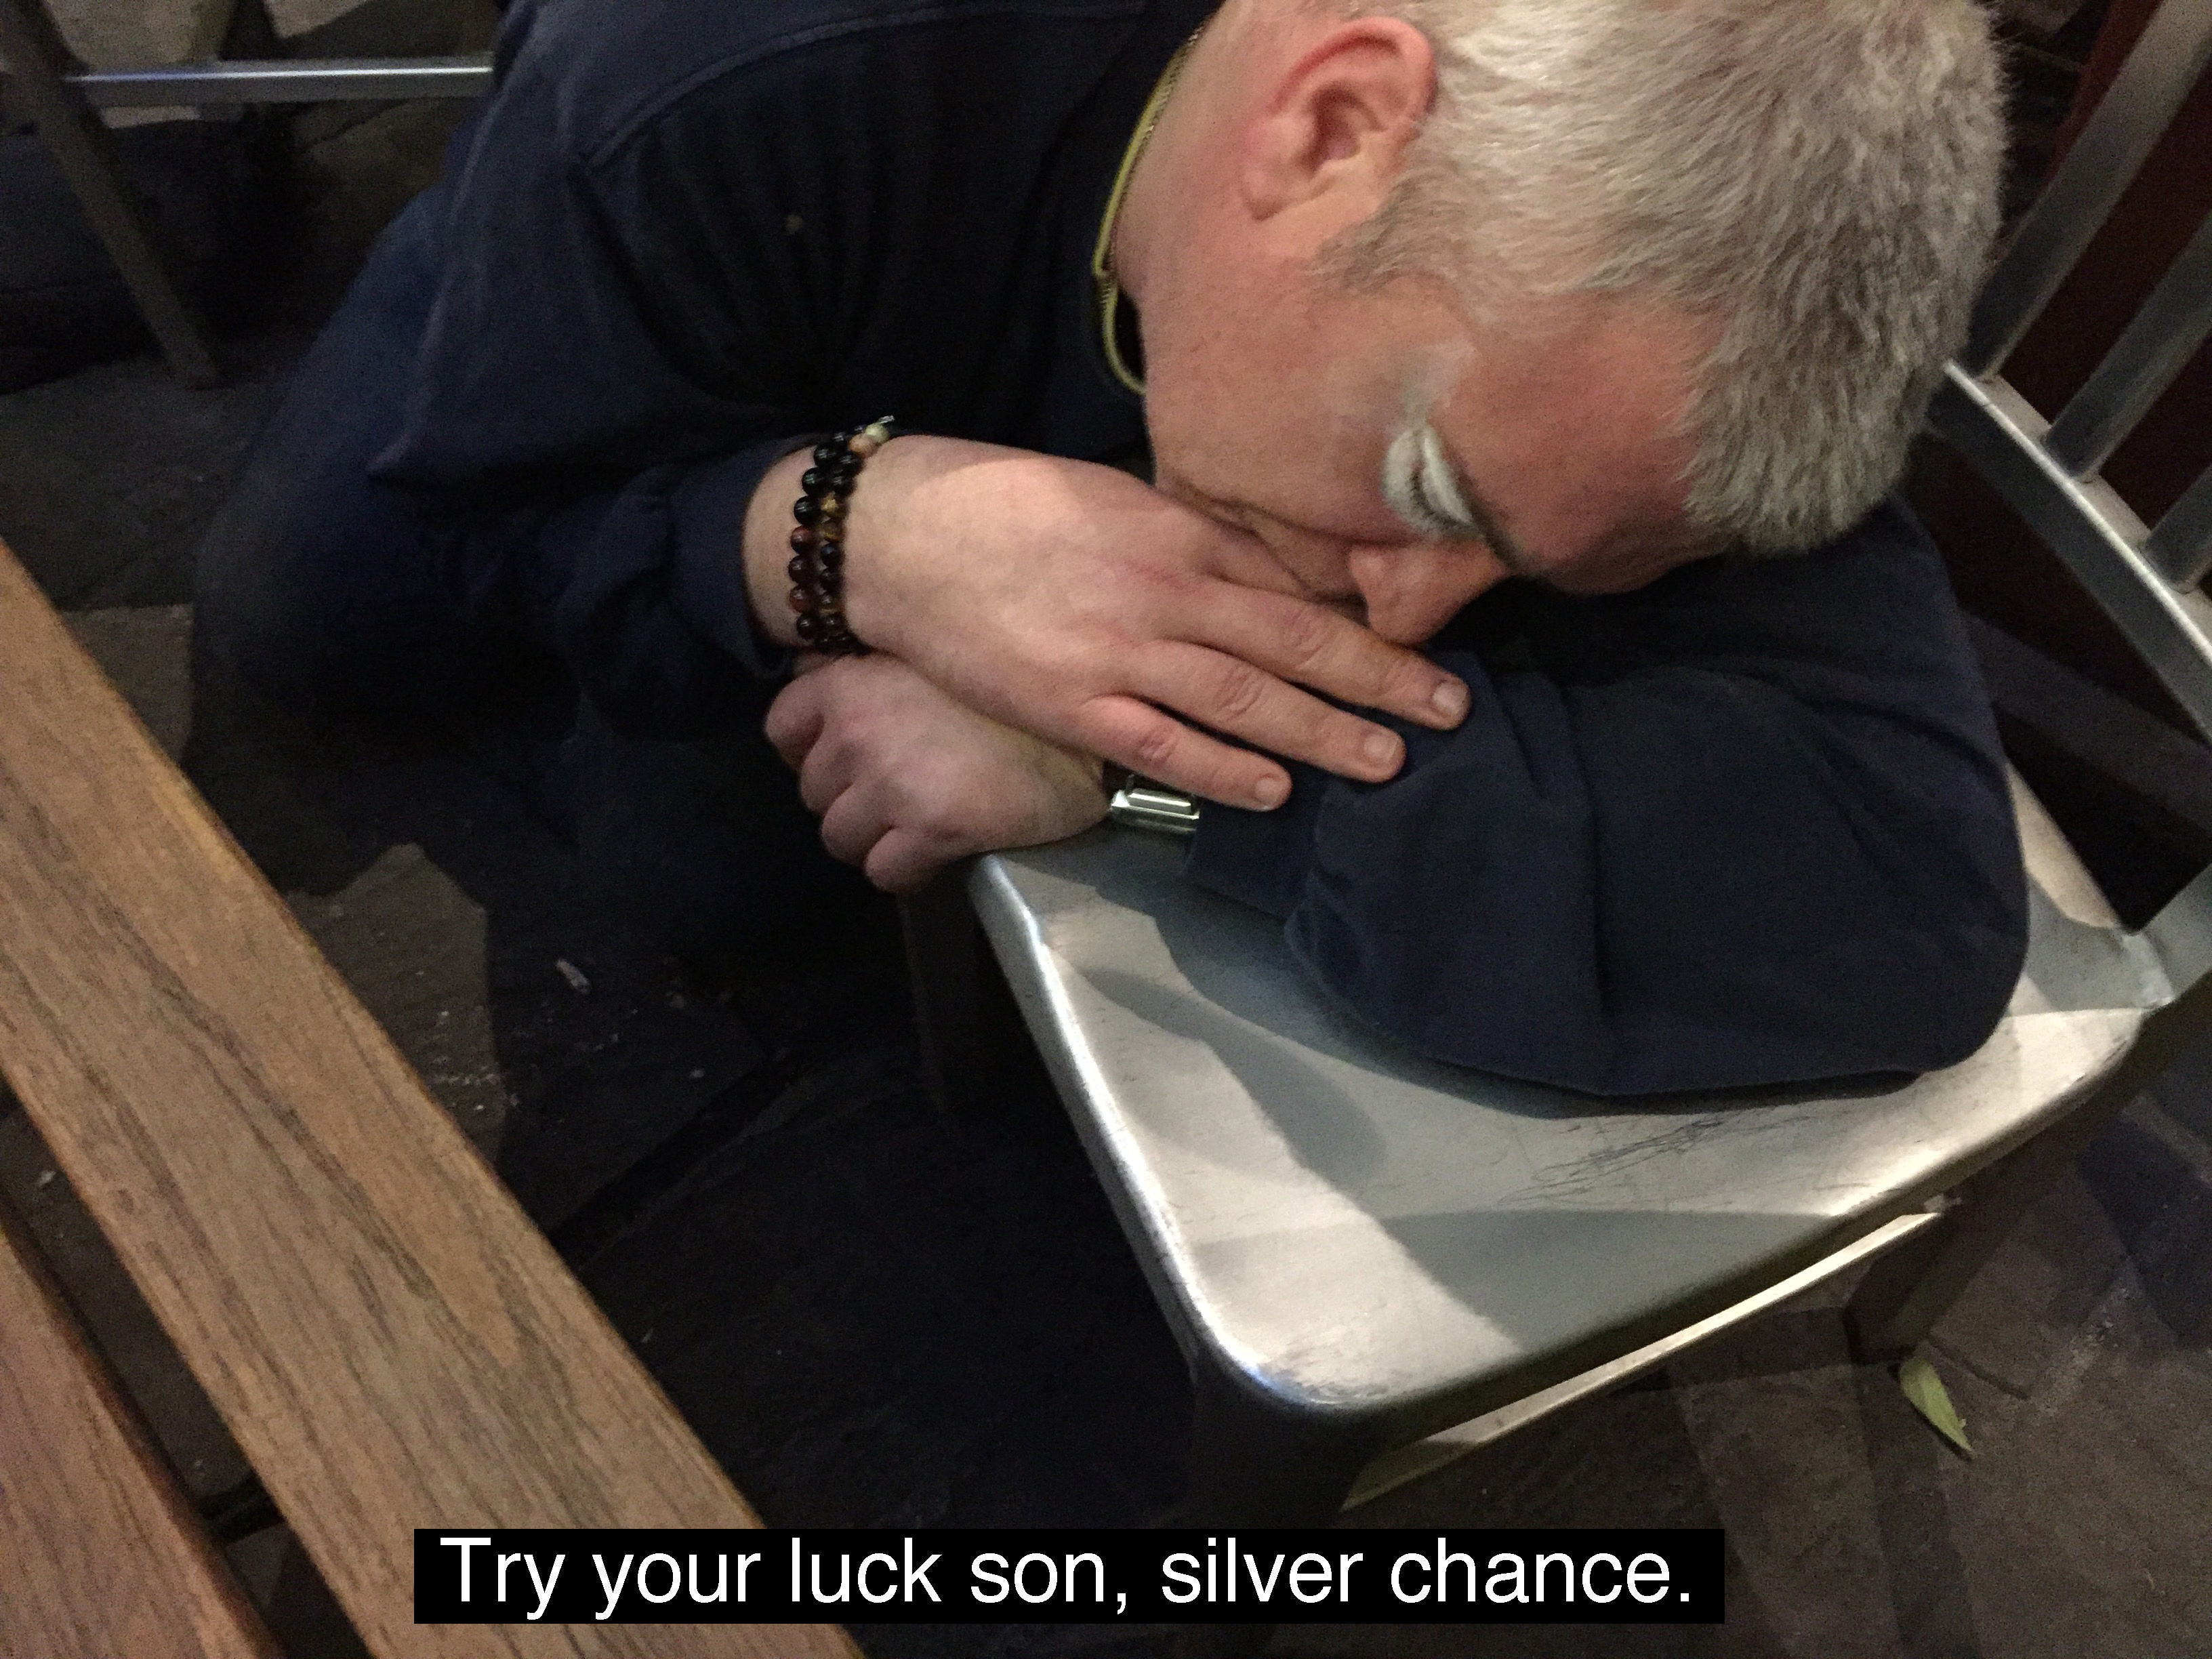 Silver chance text